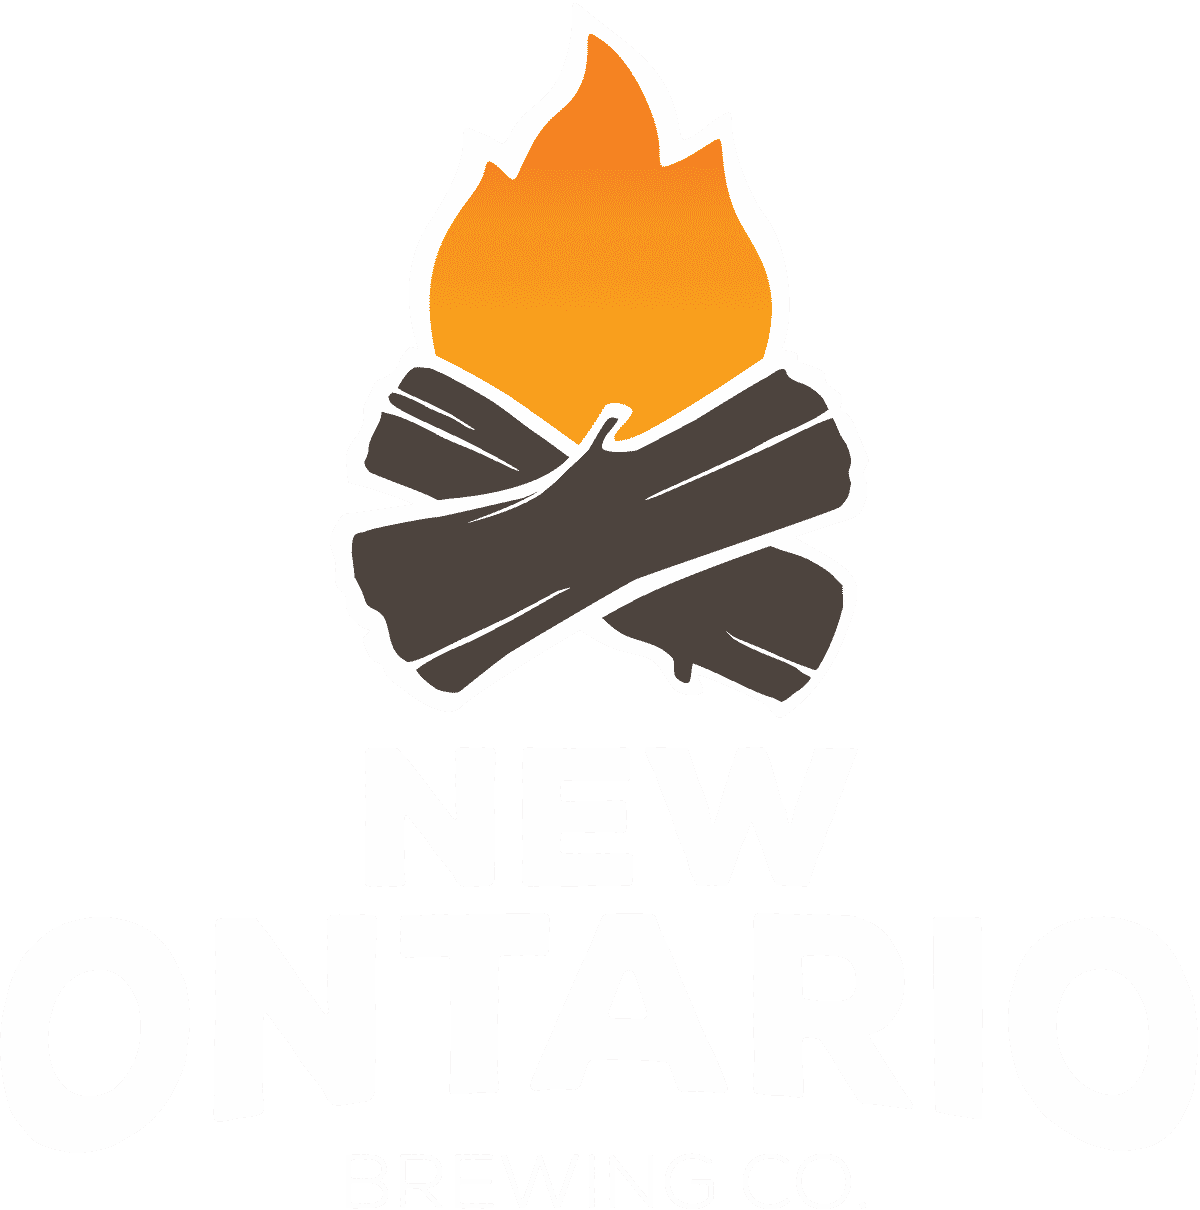 The New Ontario Brewing Company